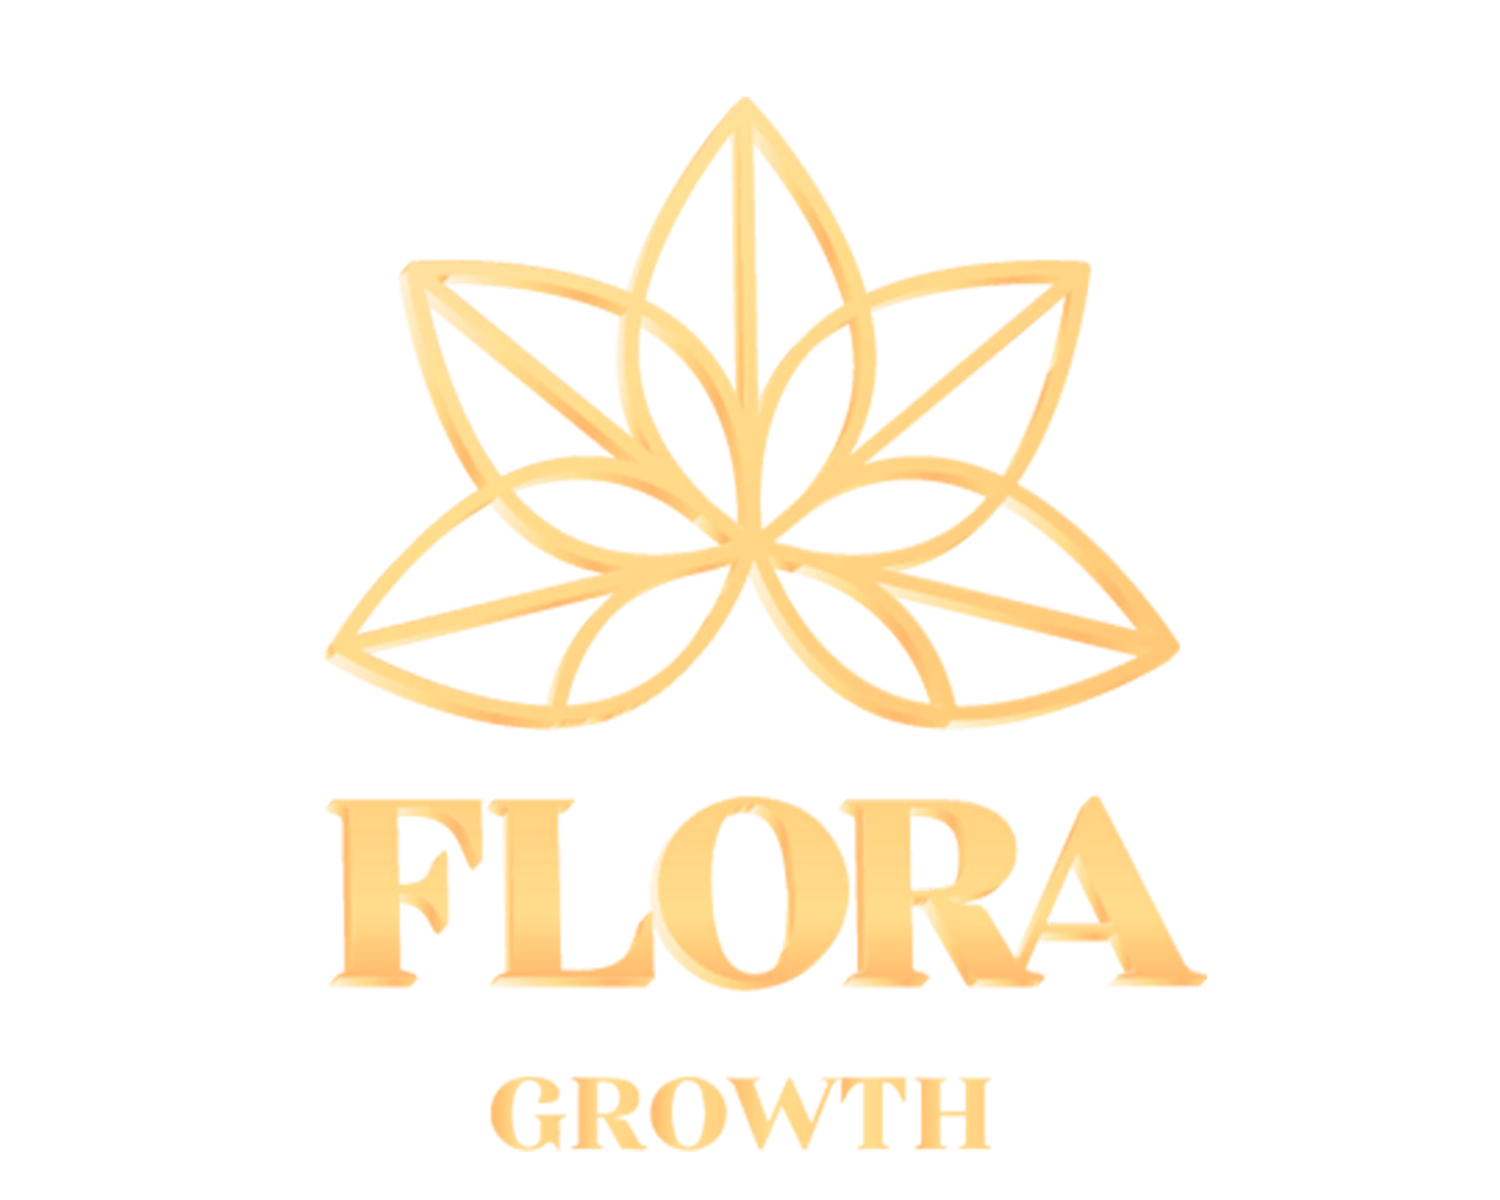 Flora Growth Announces Brazilian Operations and Appoints General Paulo S